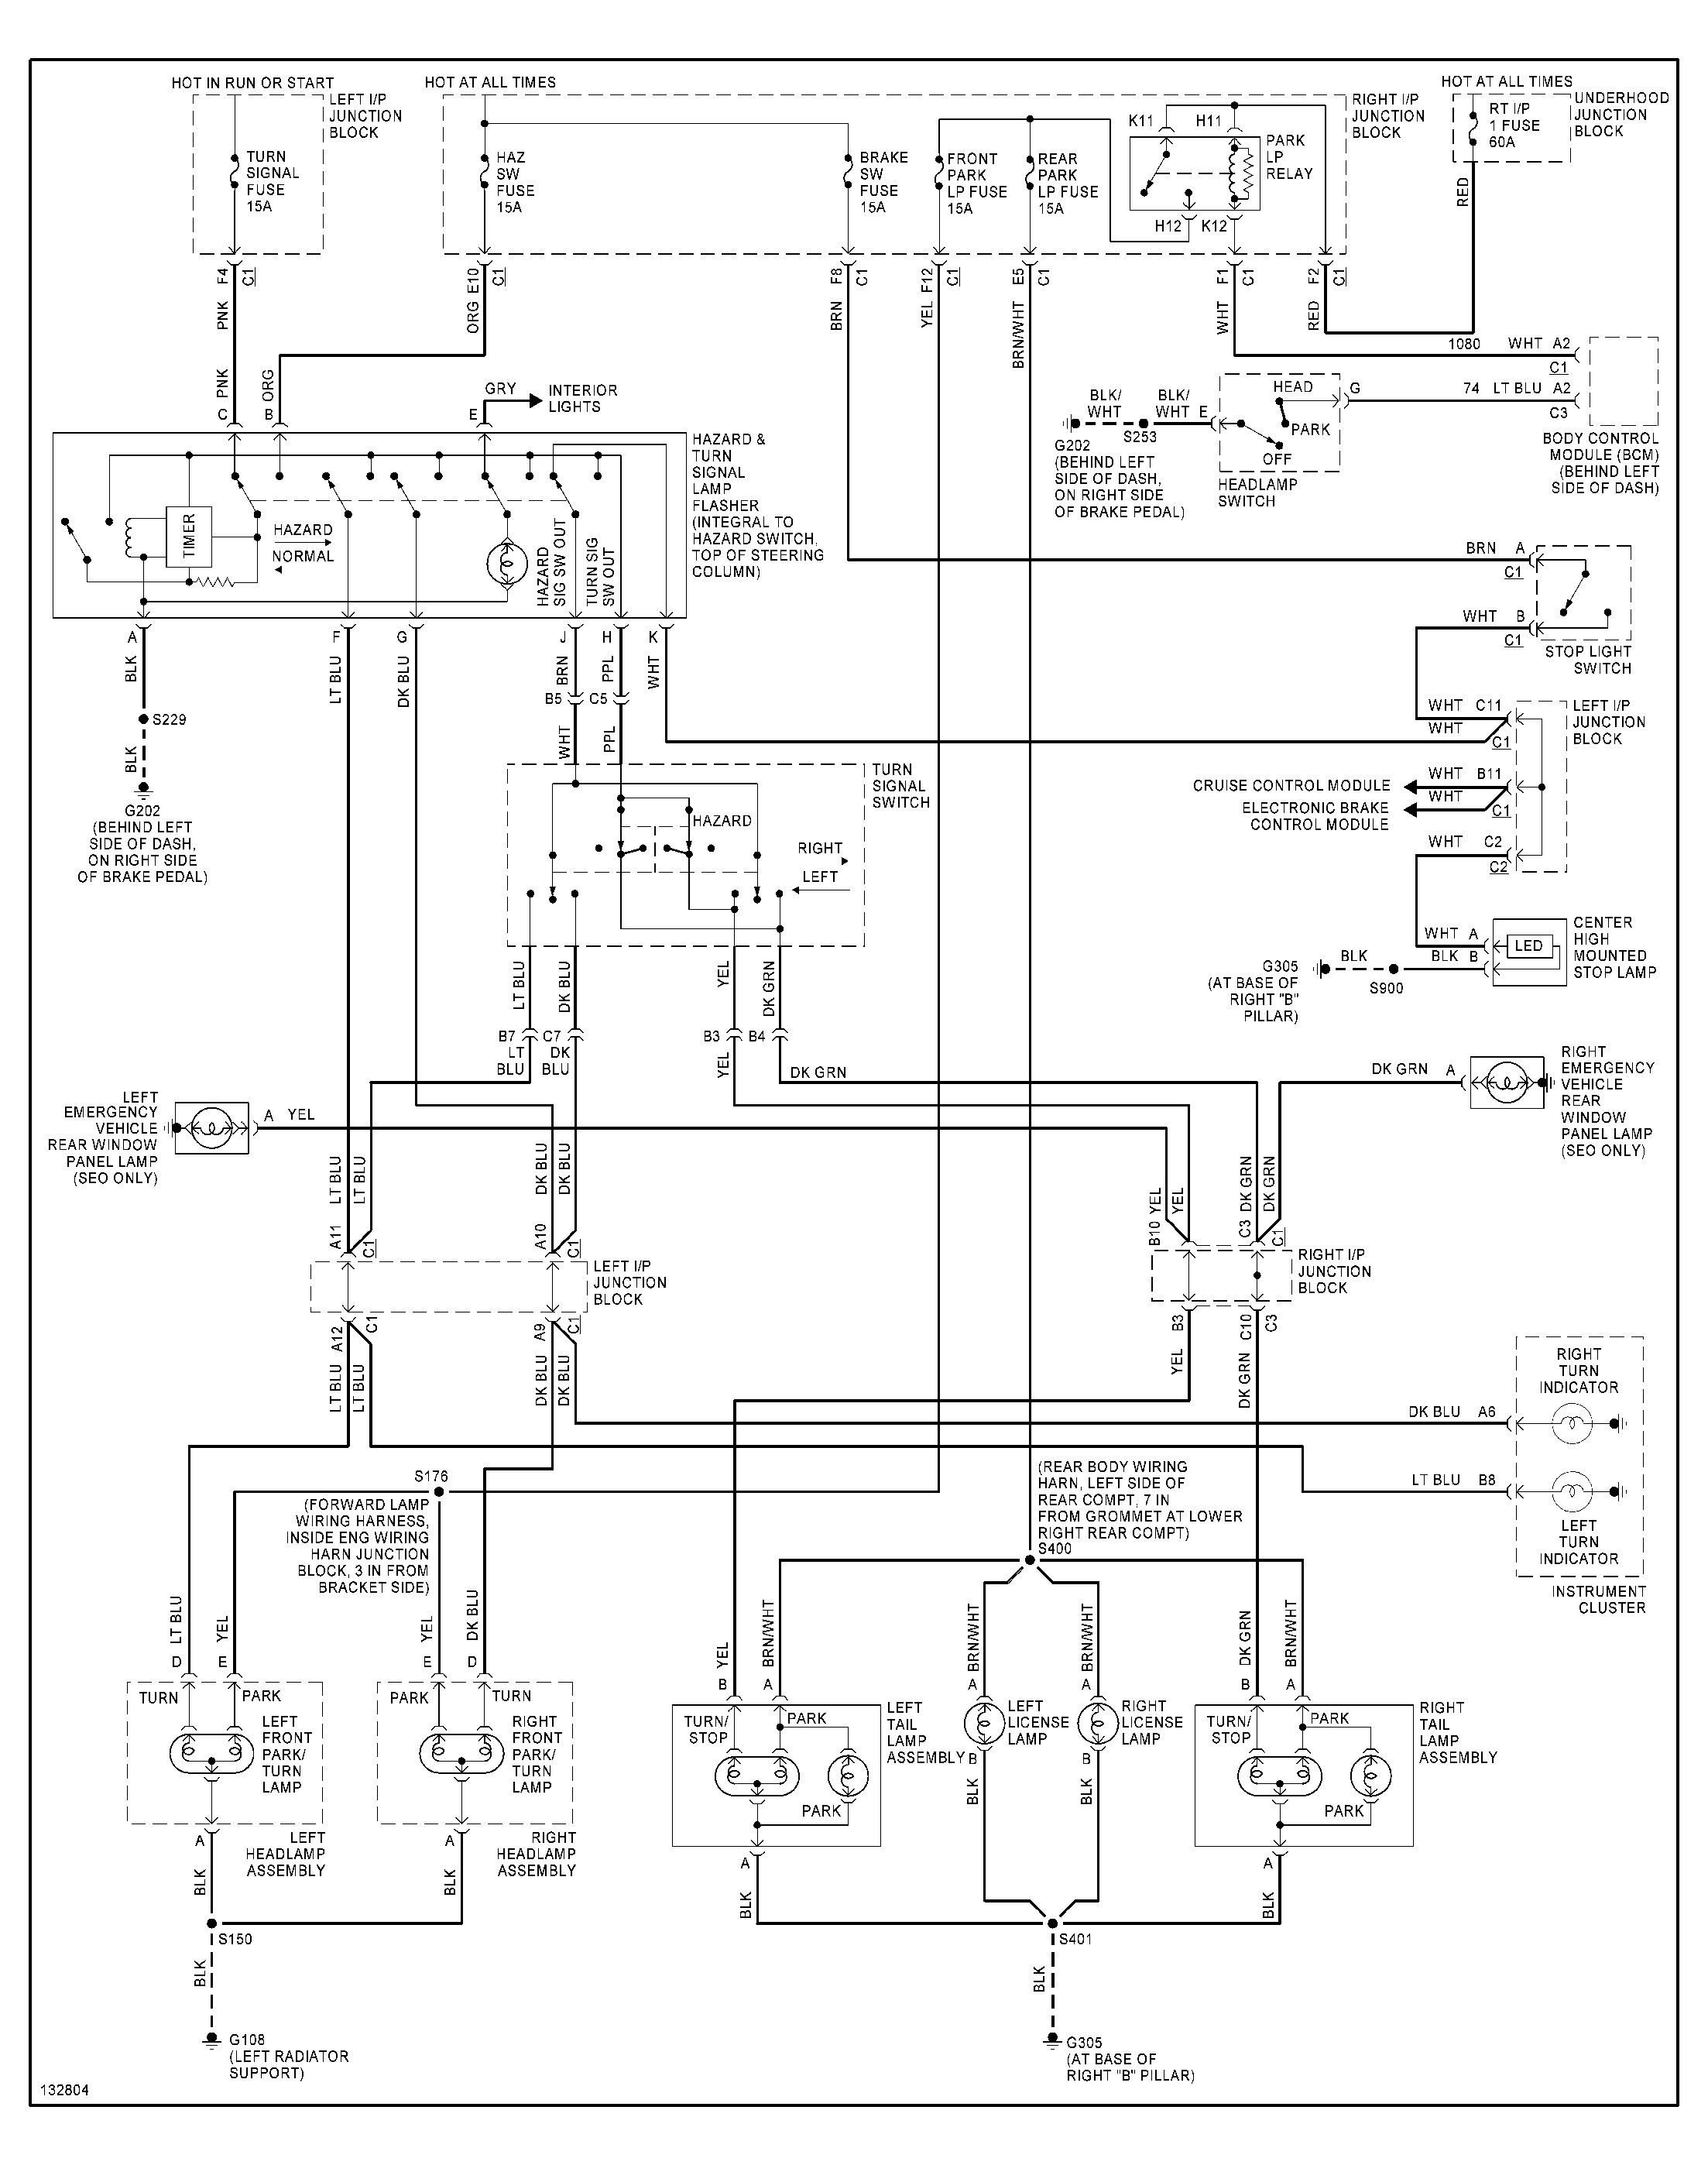 2001 chevy impala 3 8 engine diagram